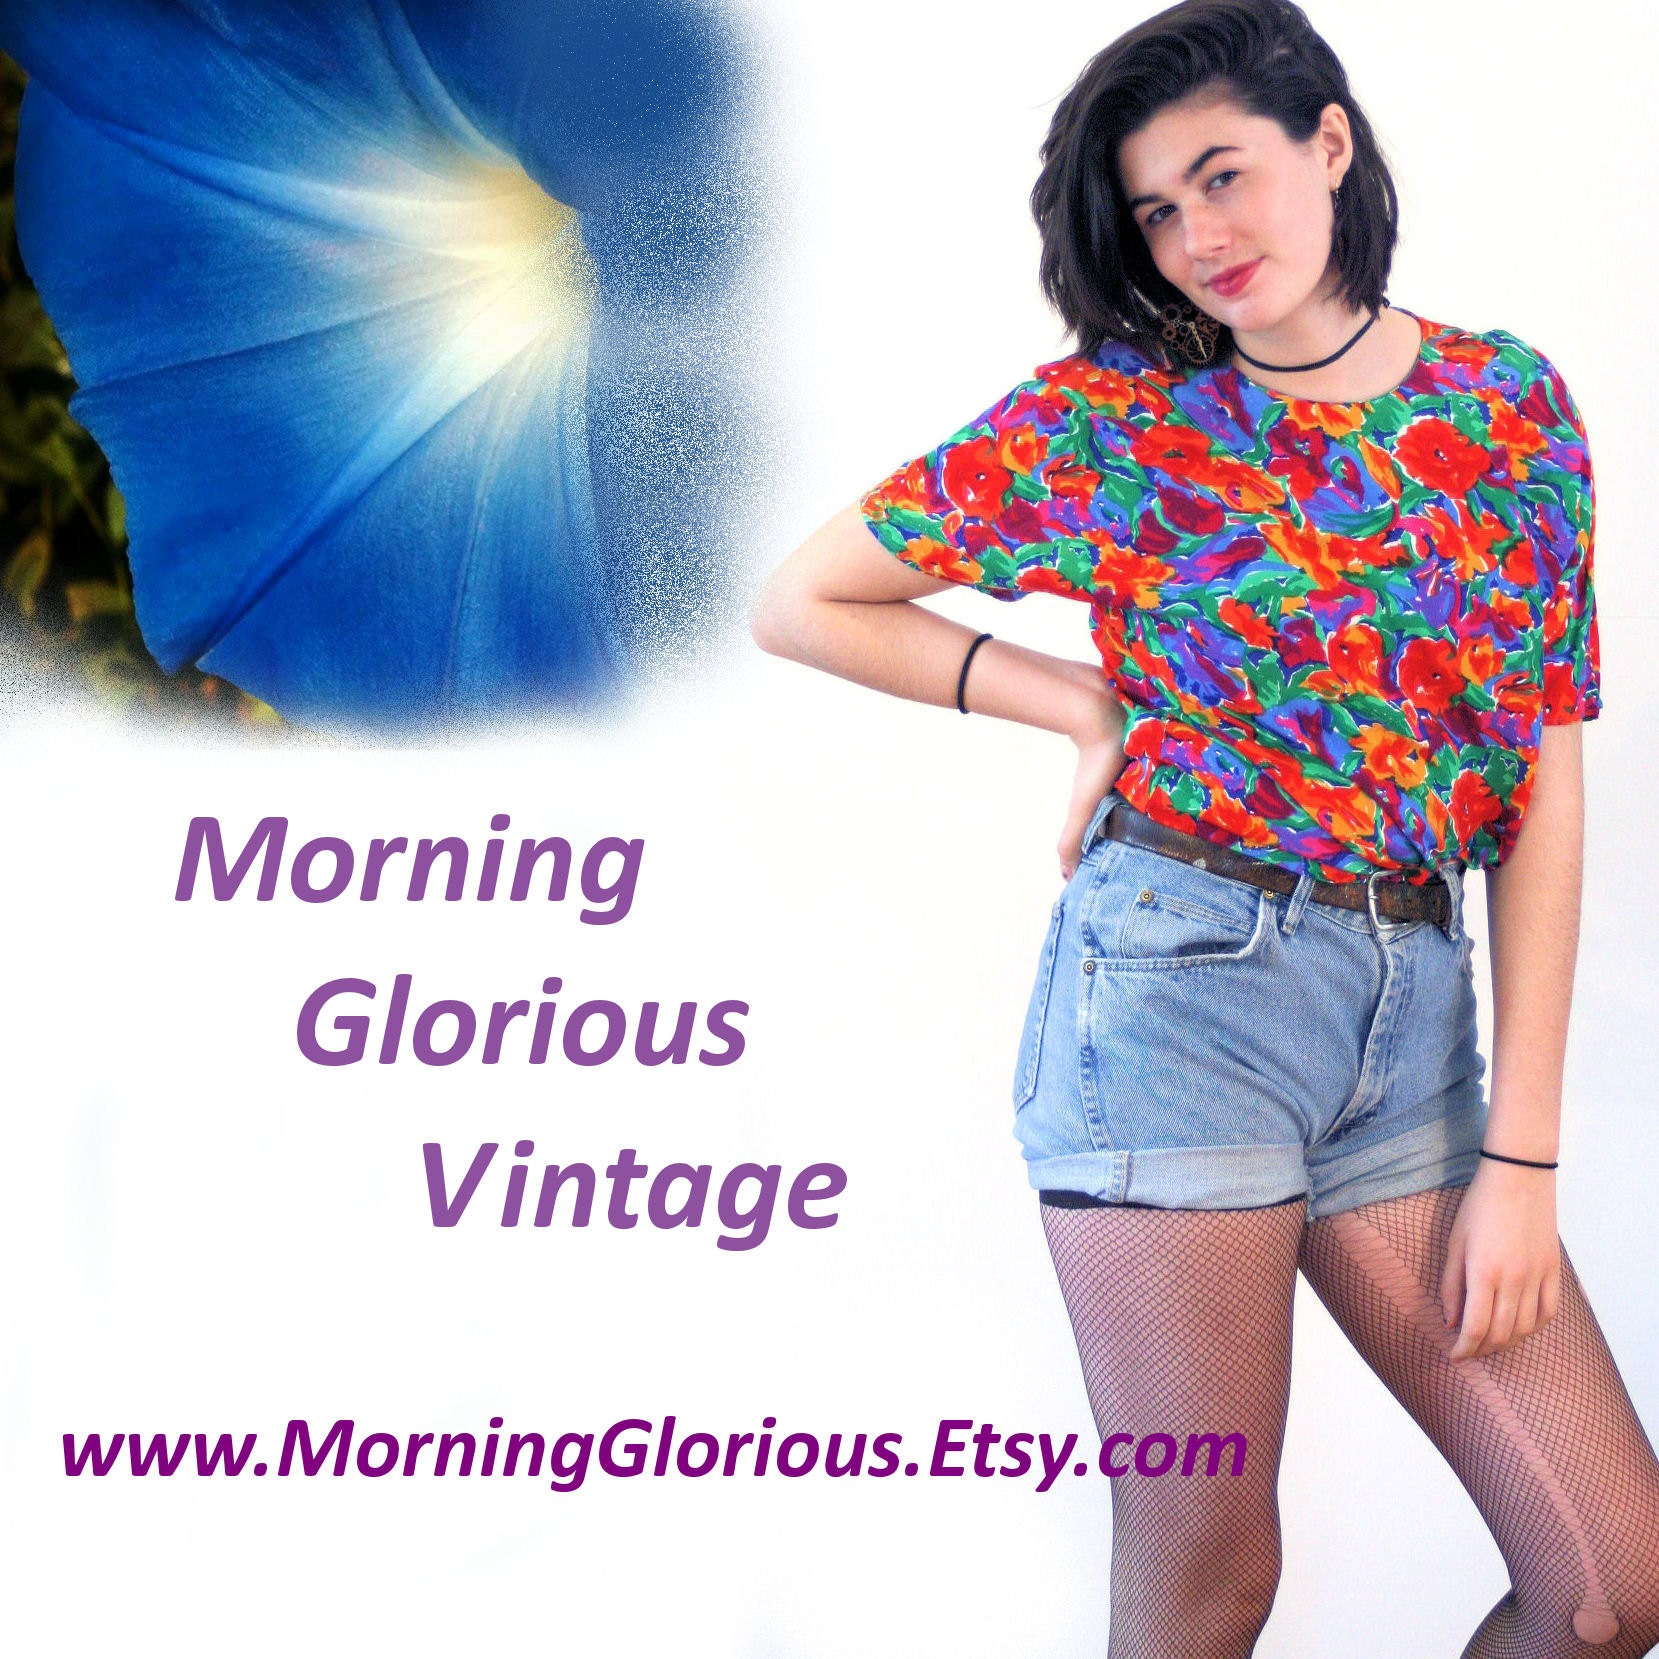 cb0efd22b037 A glorious selection of vintage fashion by MorningGlorious on Etsy